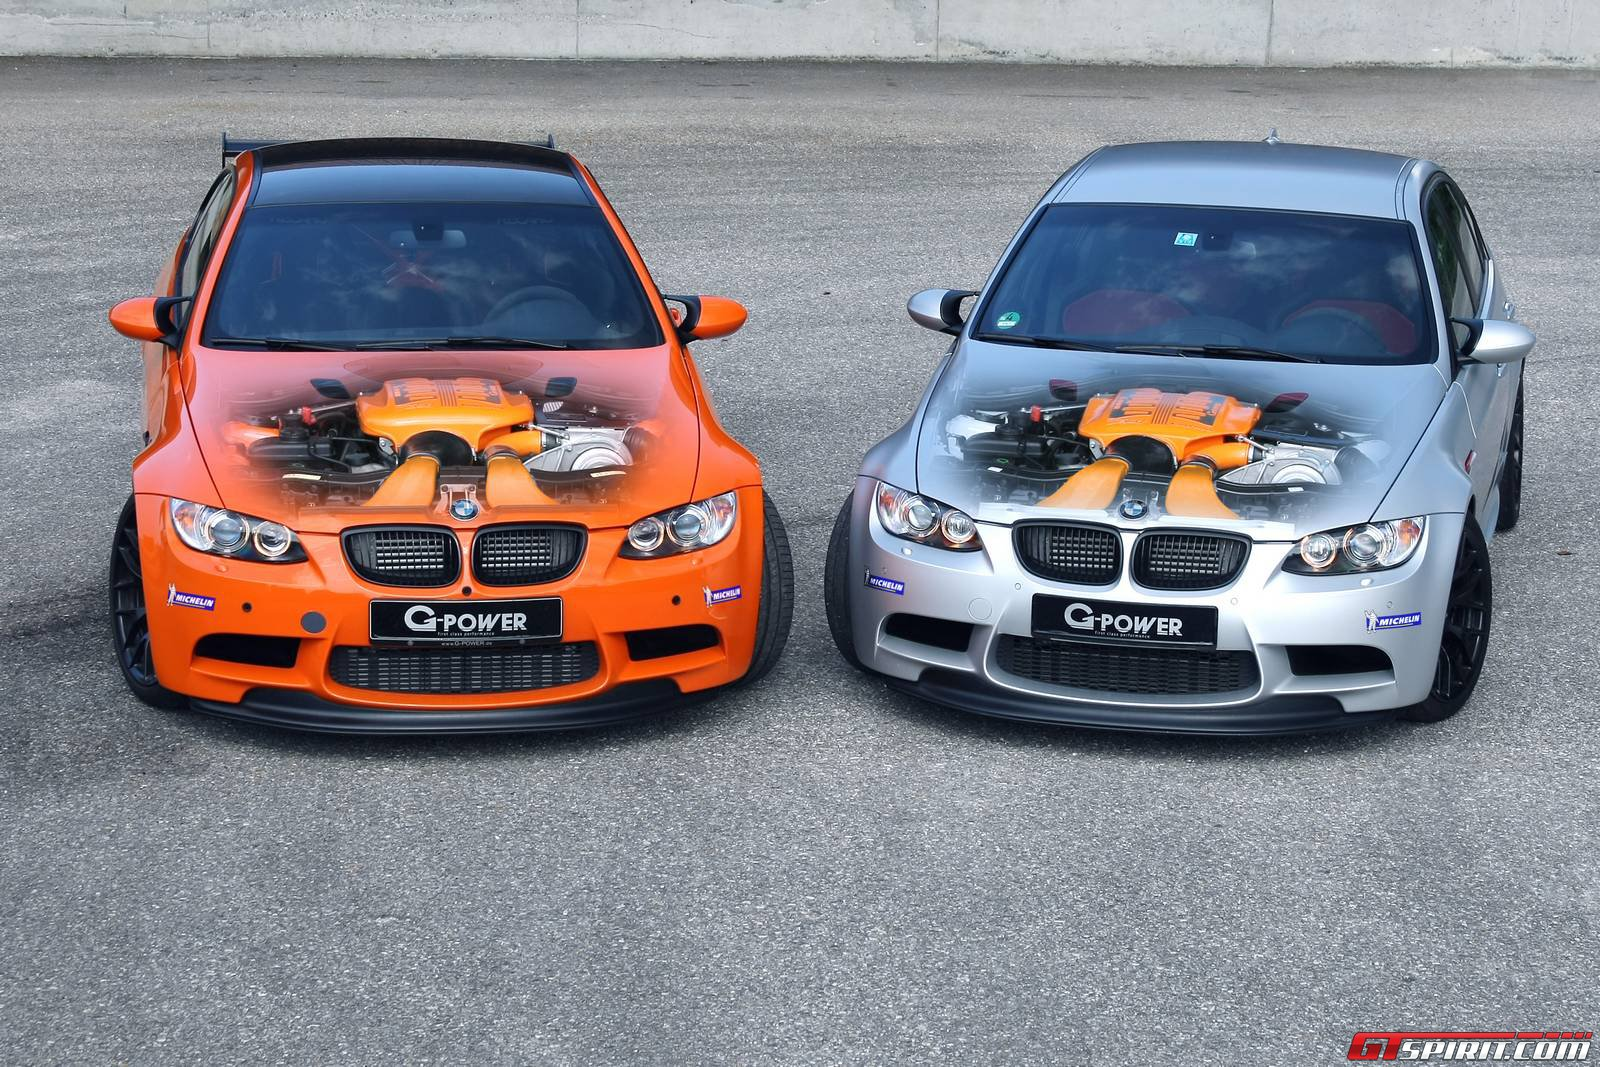 official g power bmw m3 crt and m3 gts gtspirit. Black Bedroom Furniture Sets. Home Design Ideas